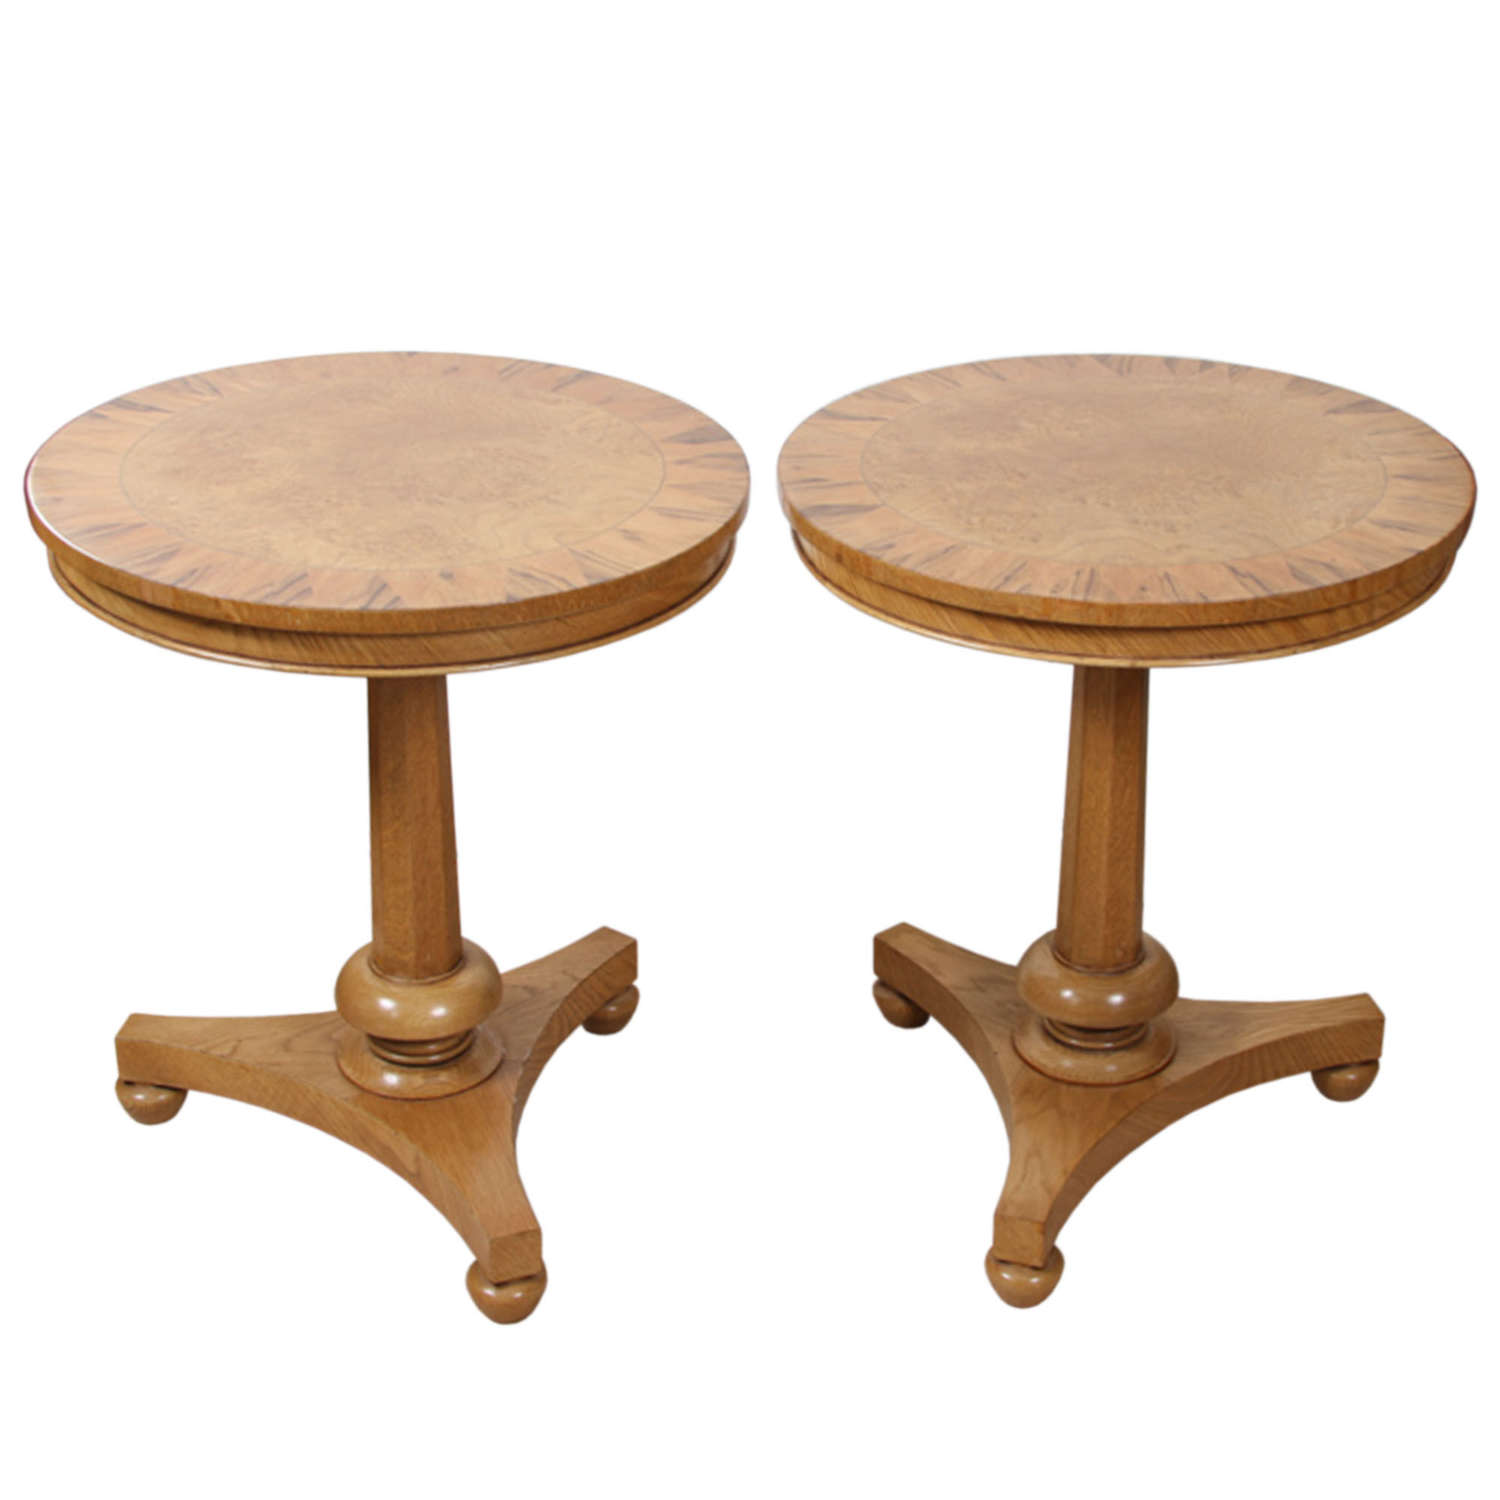 Pair of Mid 19th Century Pedestal Oak Tables